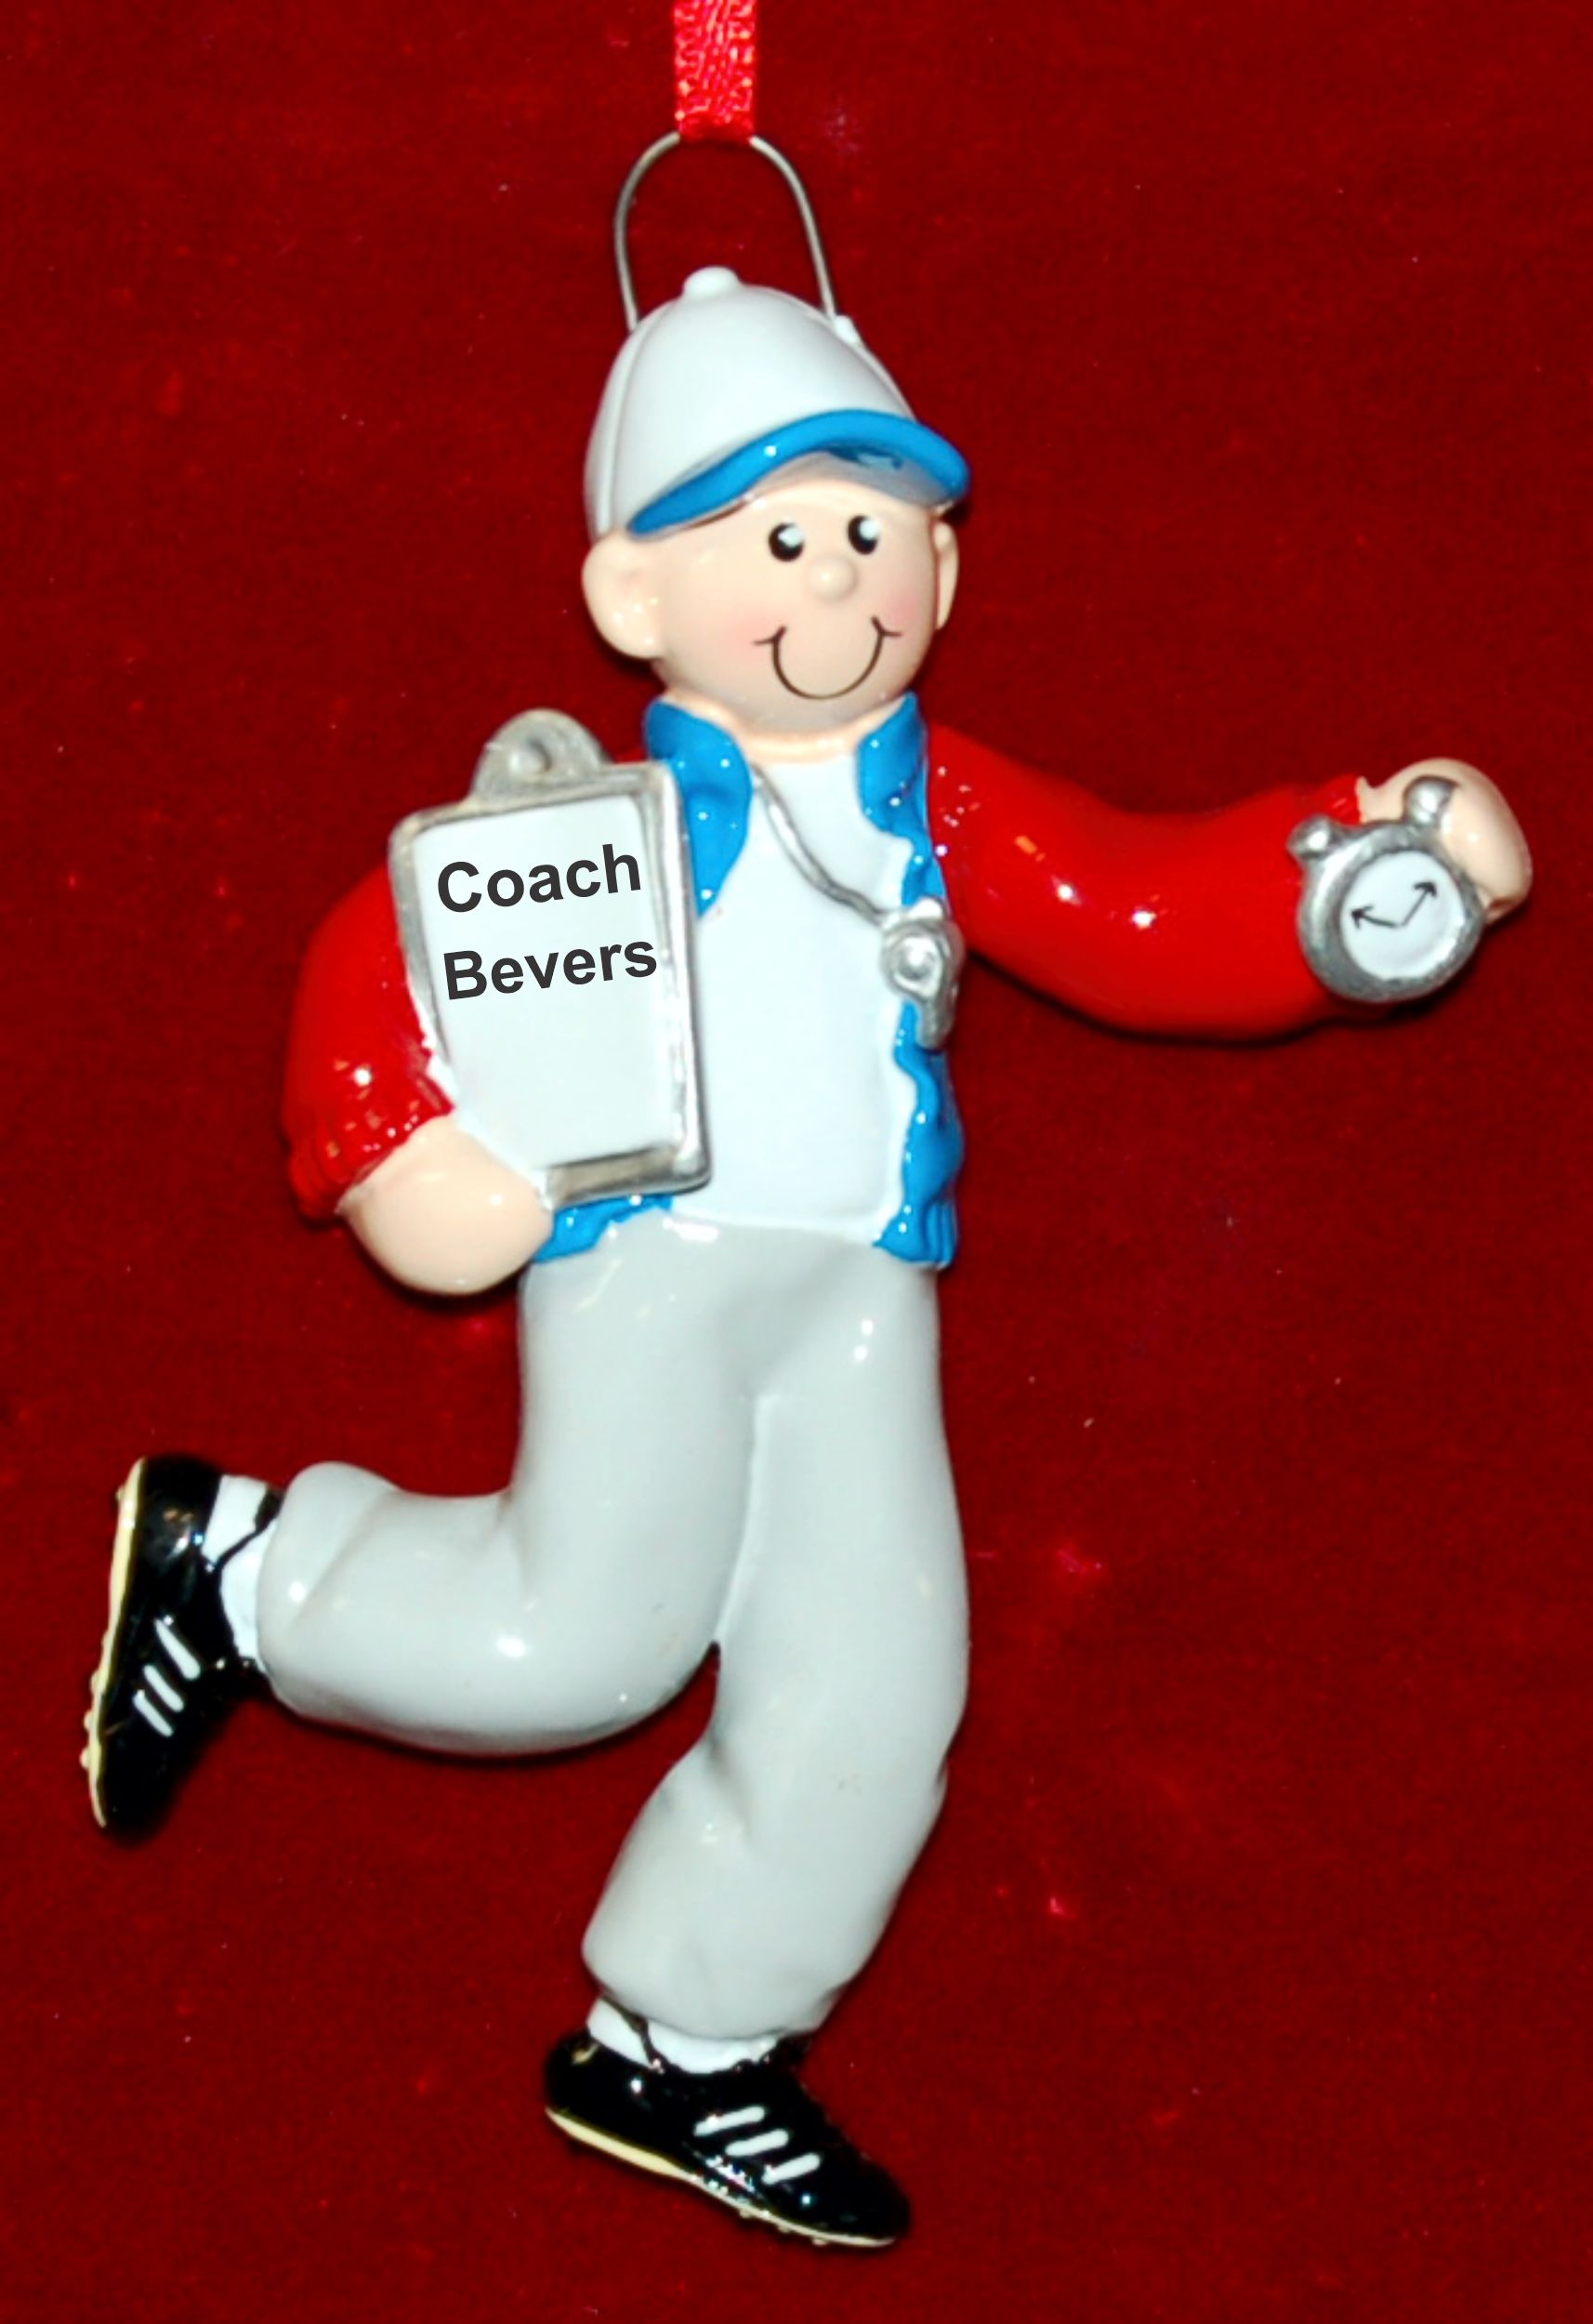 Personalized Coach Christmas Ornament Male by Russell Rhodes